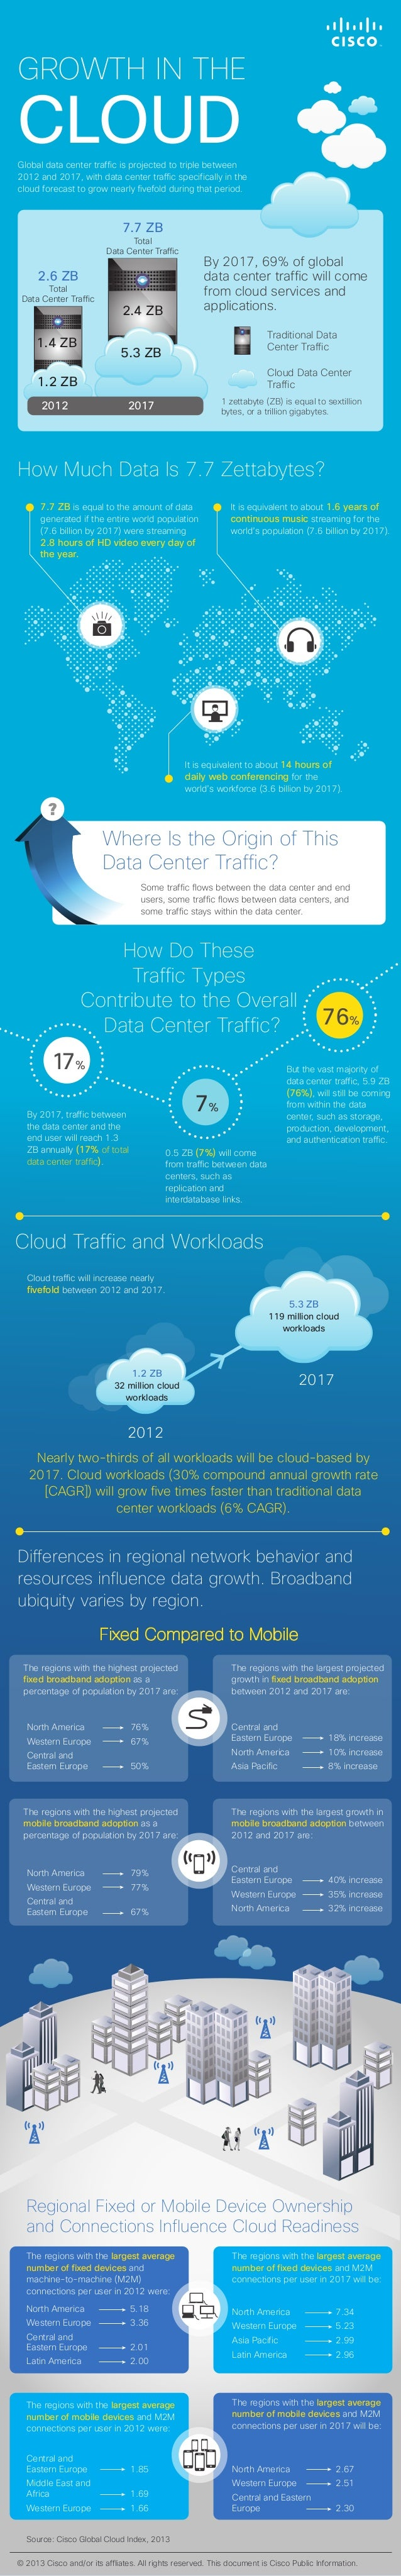 Global Cloud Index: Global Data Center Traffic and Projected Forecast, 2012-2017